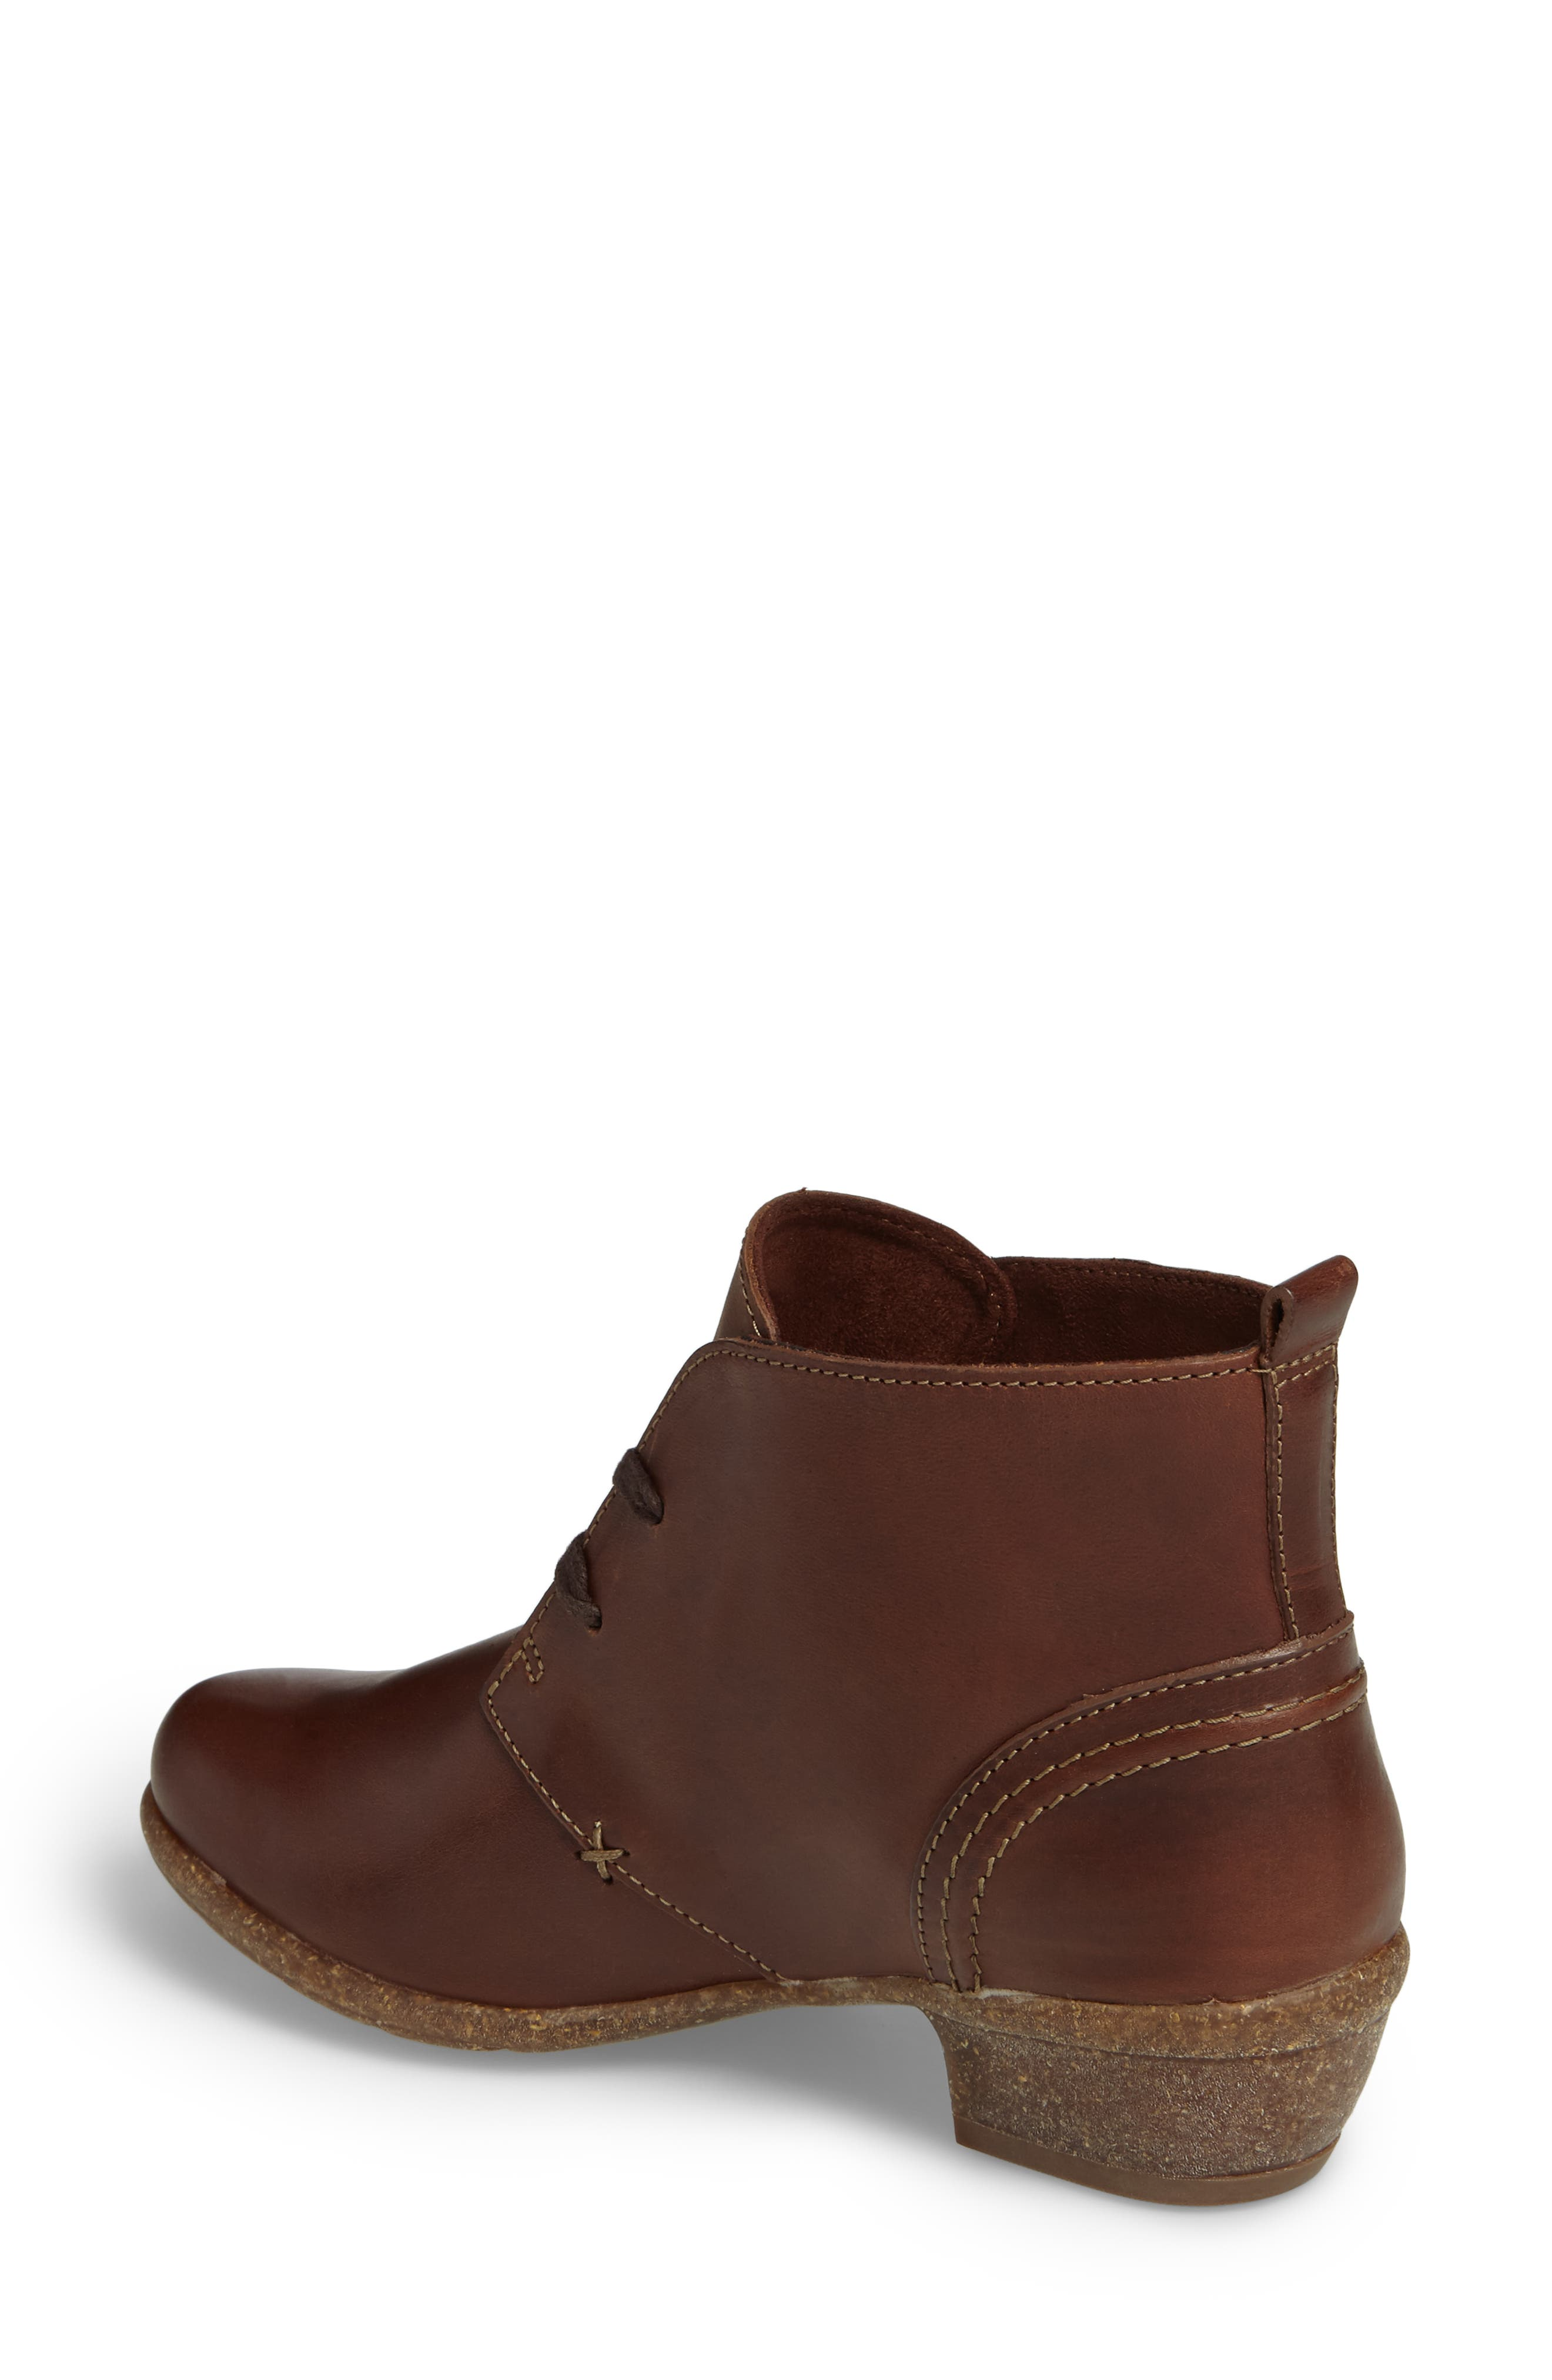 Wilrose Sage Bootie,                             Alternate thumbnail 2, color,                             Brown Nubuck Leather